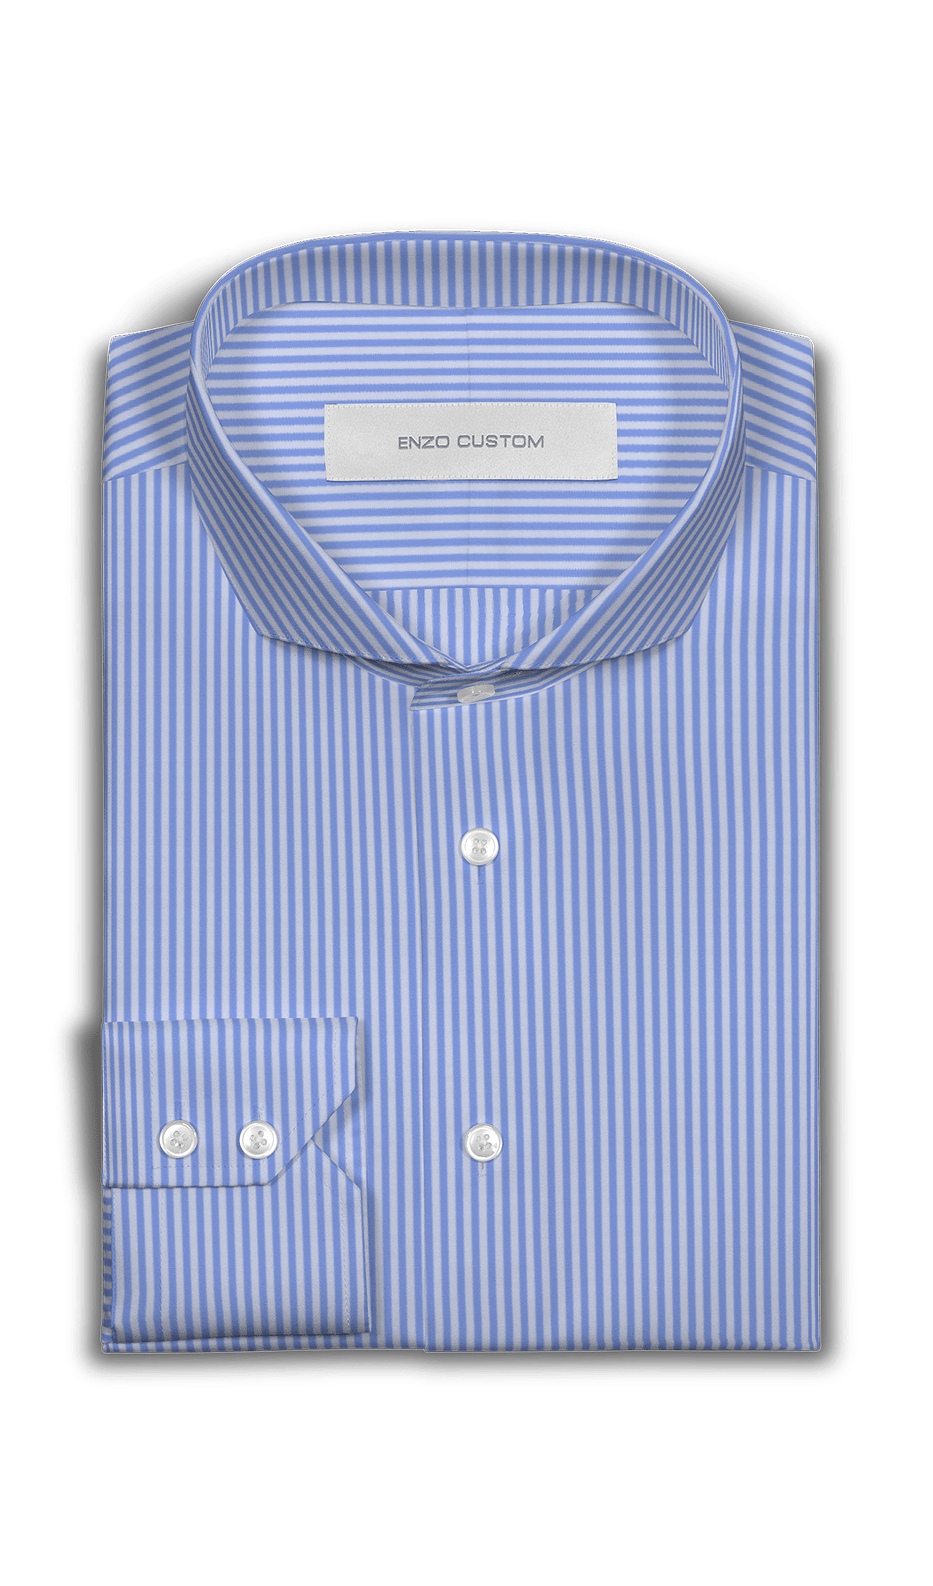 Blue/White Striped Dress Shirt - Enzo Custom